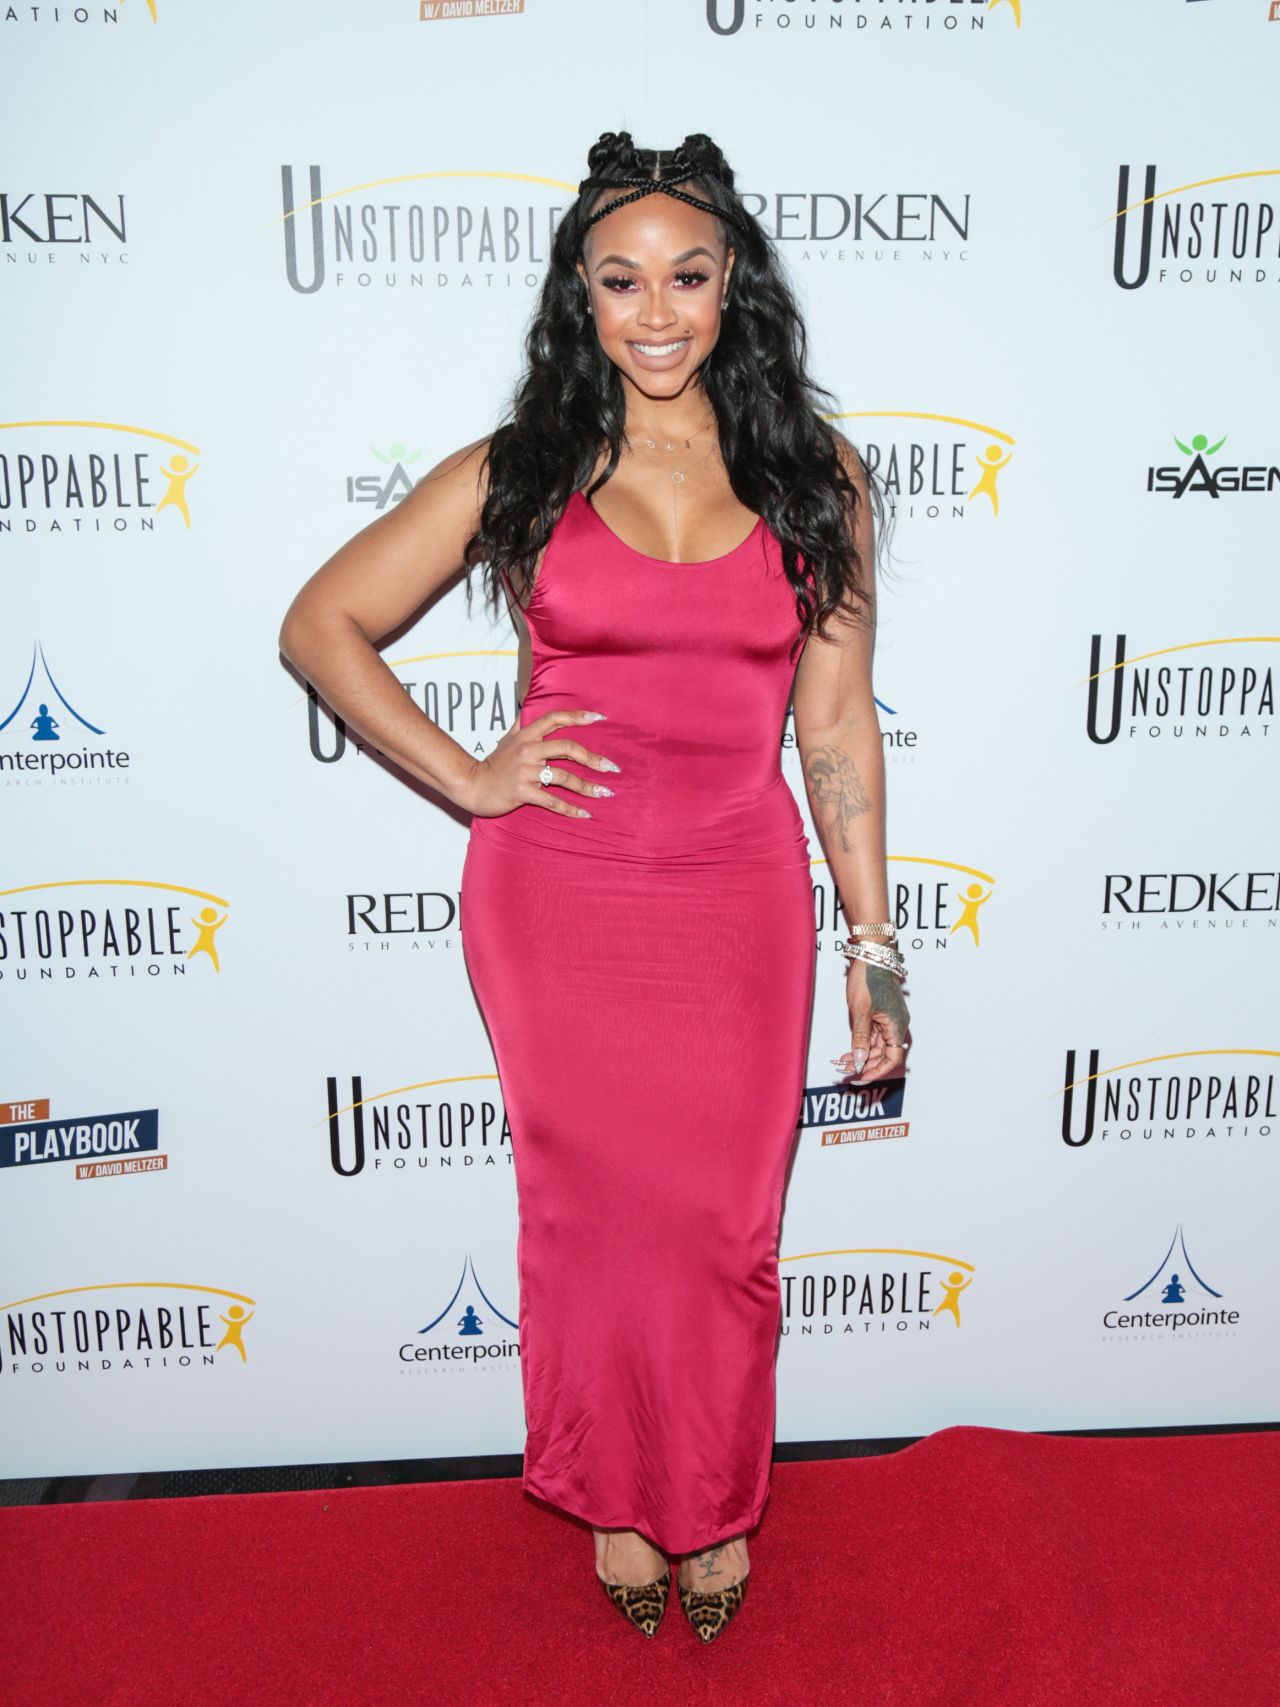 masika-kalysha-unstoppable-foundation-10th-anniversary-gala-3.jpg